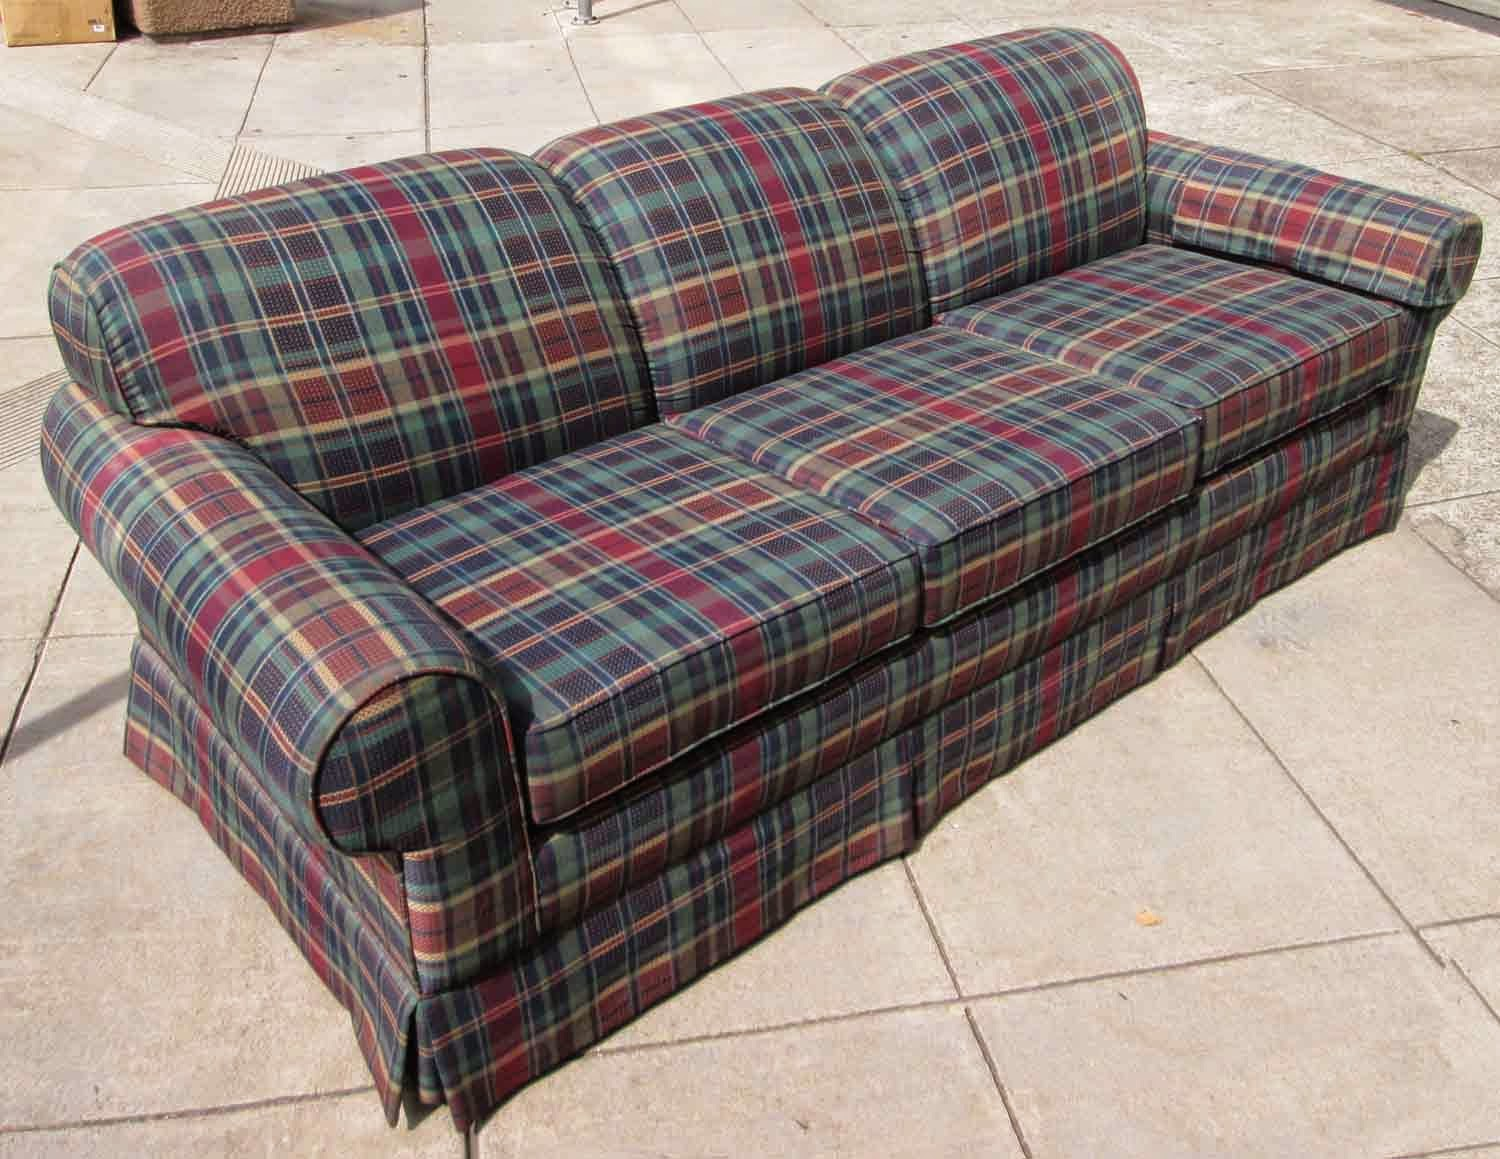 UHURU FURNITURE & COLLECTIBLES: SOLD Mad About Plaid Sofa ...